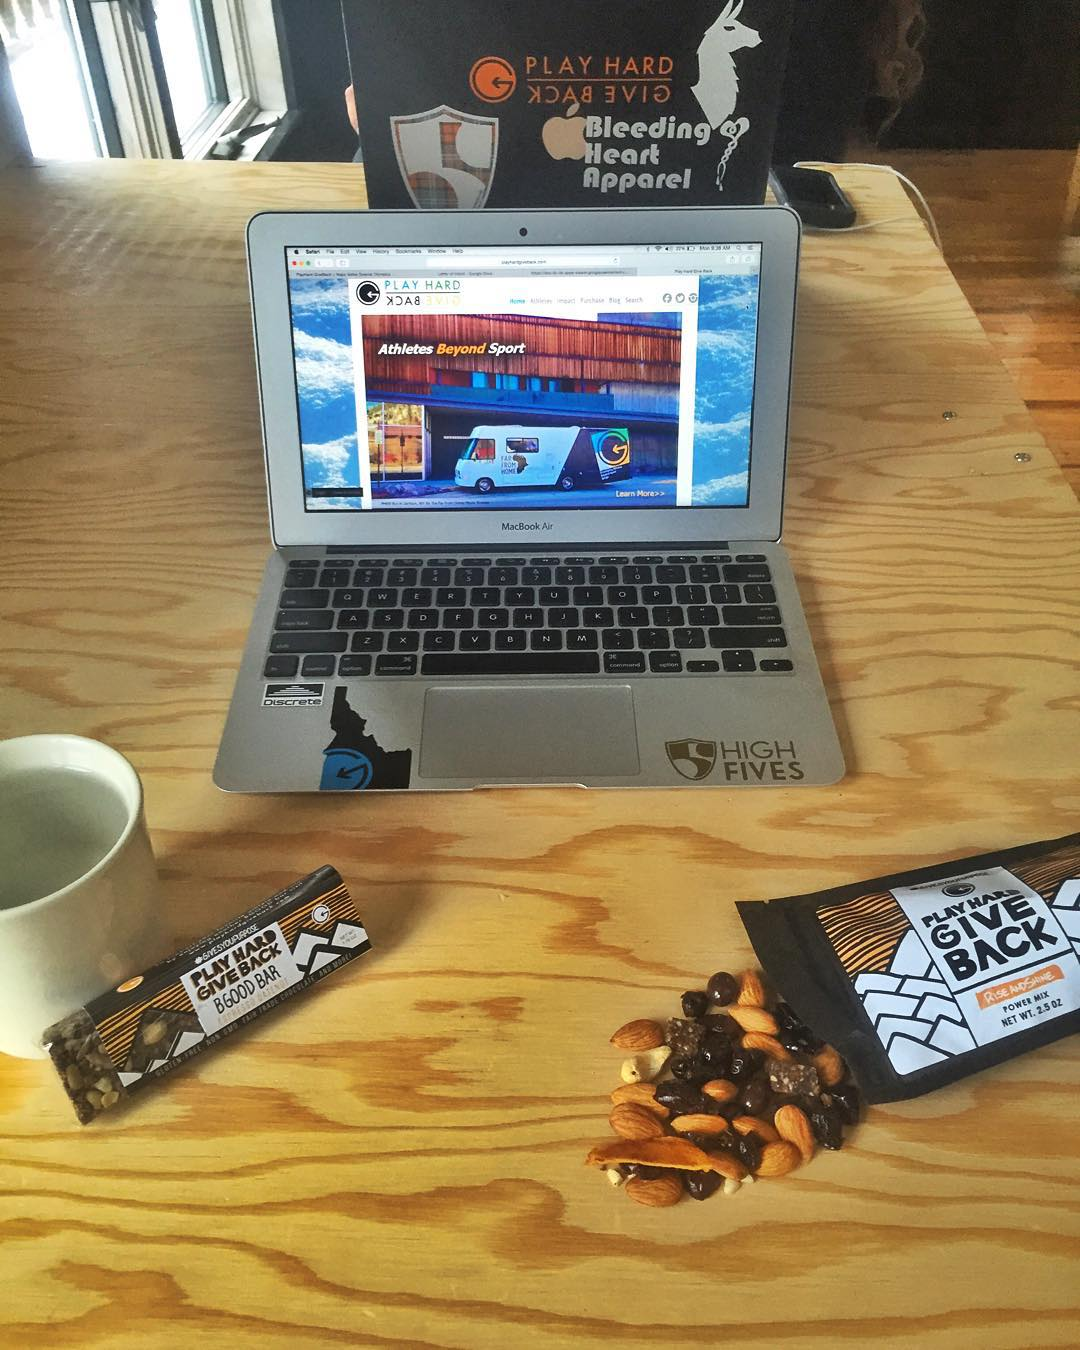 Case of the Mondays !? Our Espresso date-nut #bgood bar and #riseandshine #trailmix with chocolate covered espresso beans will give you the extra energy you need to cure those #Mondayblues!! ☕️#snackwithpurpose #phgb #gearforgood #rockdiscrete